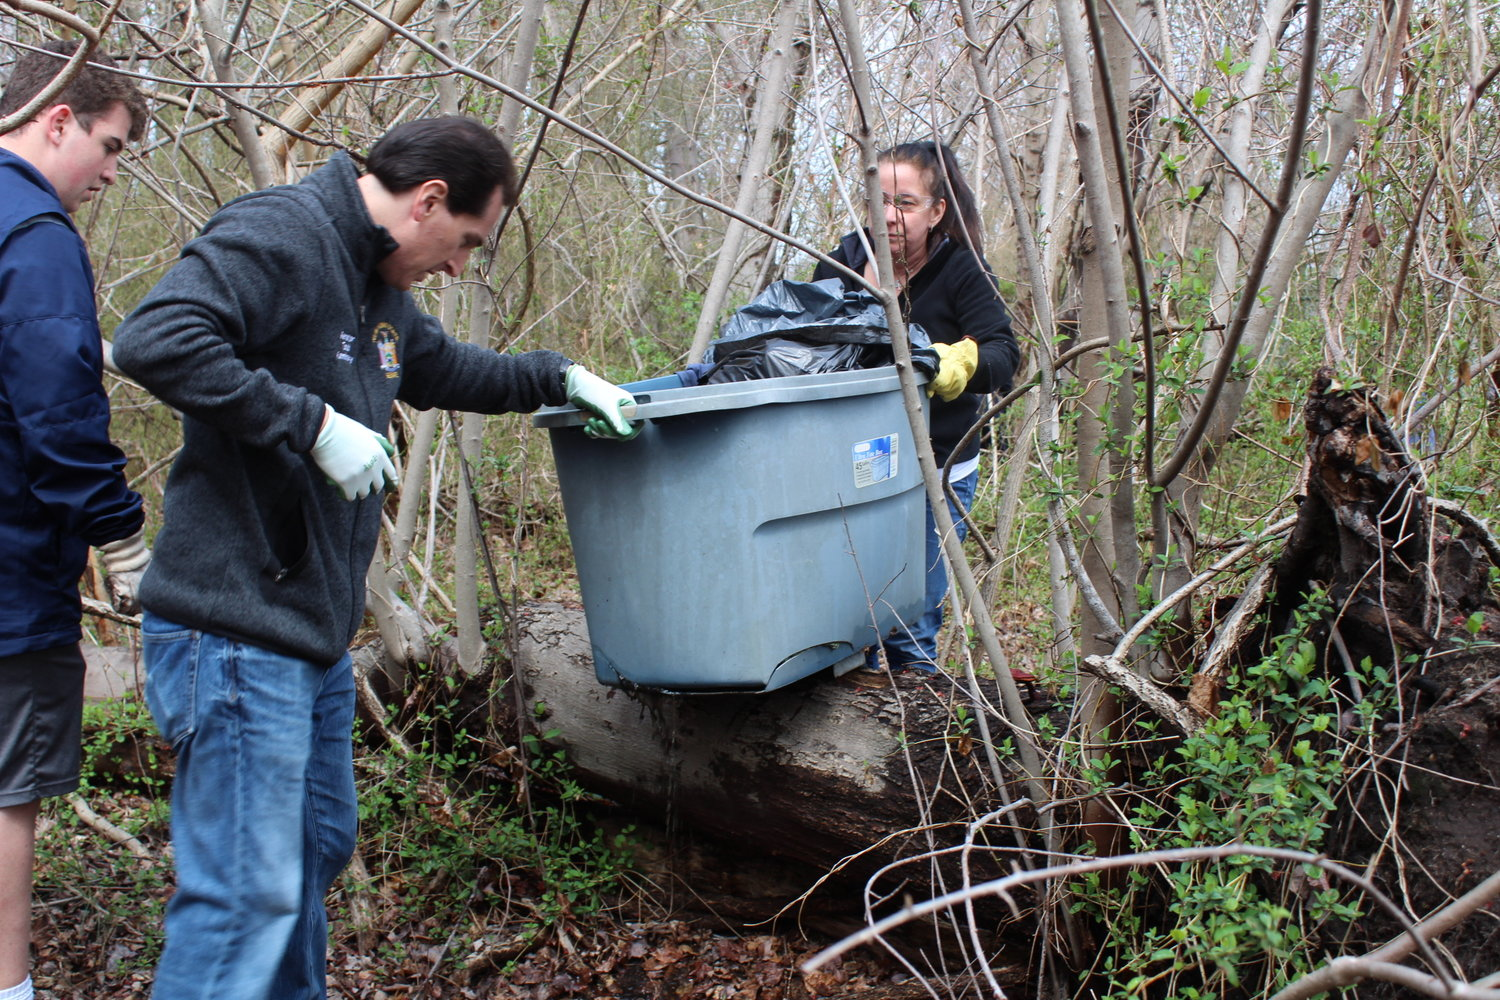 Though wearing gloves, State Sen. Todd Kaminsky got his hands dirty, so to speak.